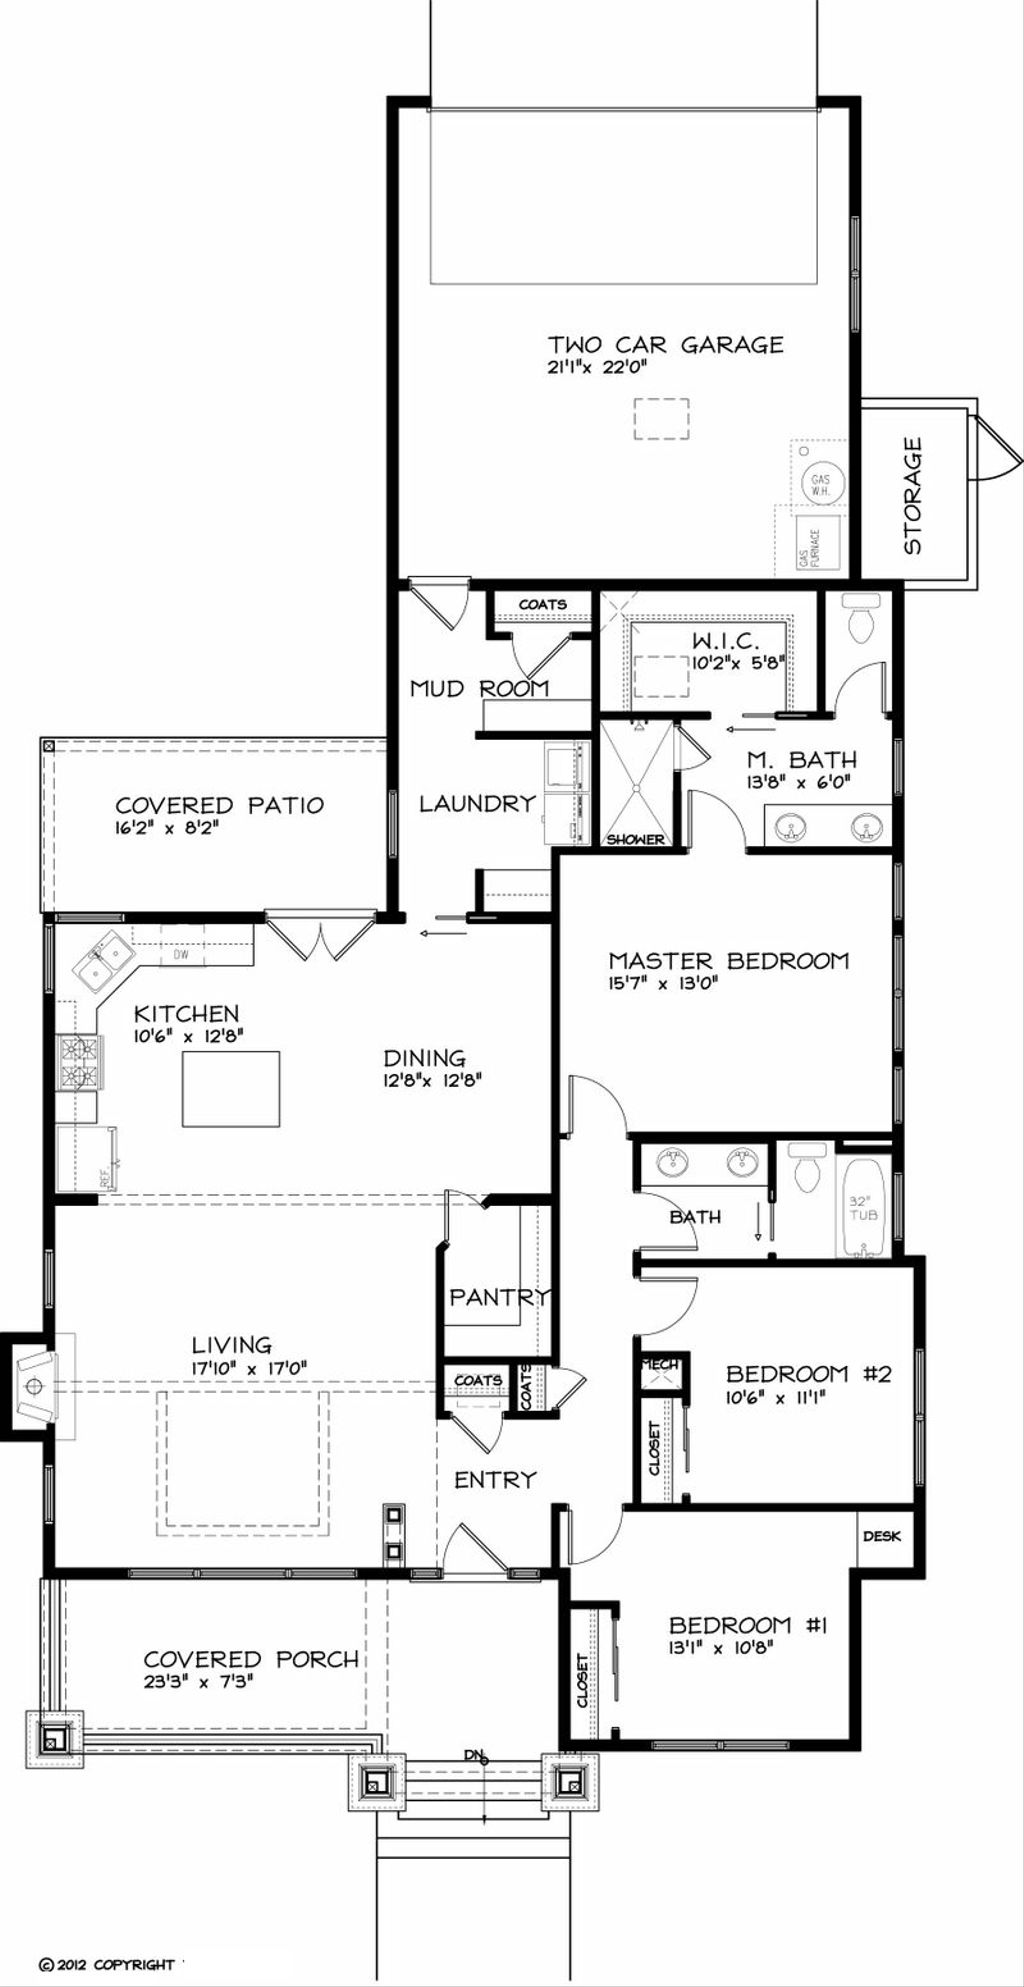 craftsman style house plan 3 beds 2 baths 1749 sq ft plan 434 17craftsman style house plan 3 beds 2 baths 1749 sq ft plan 434